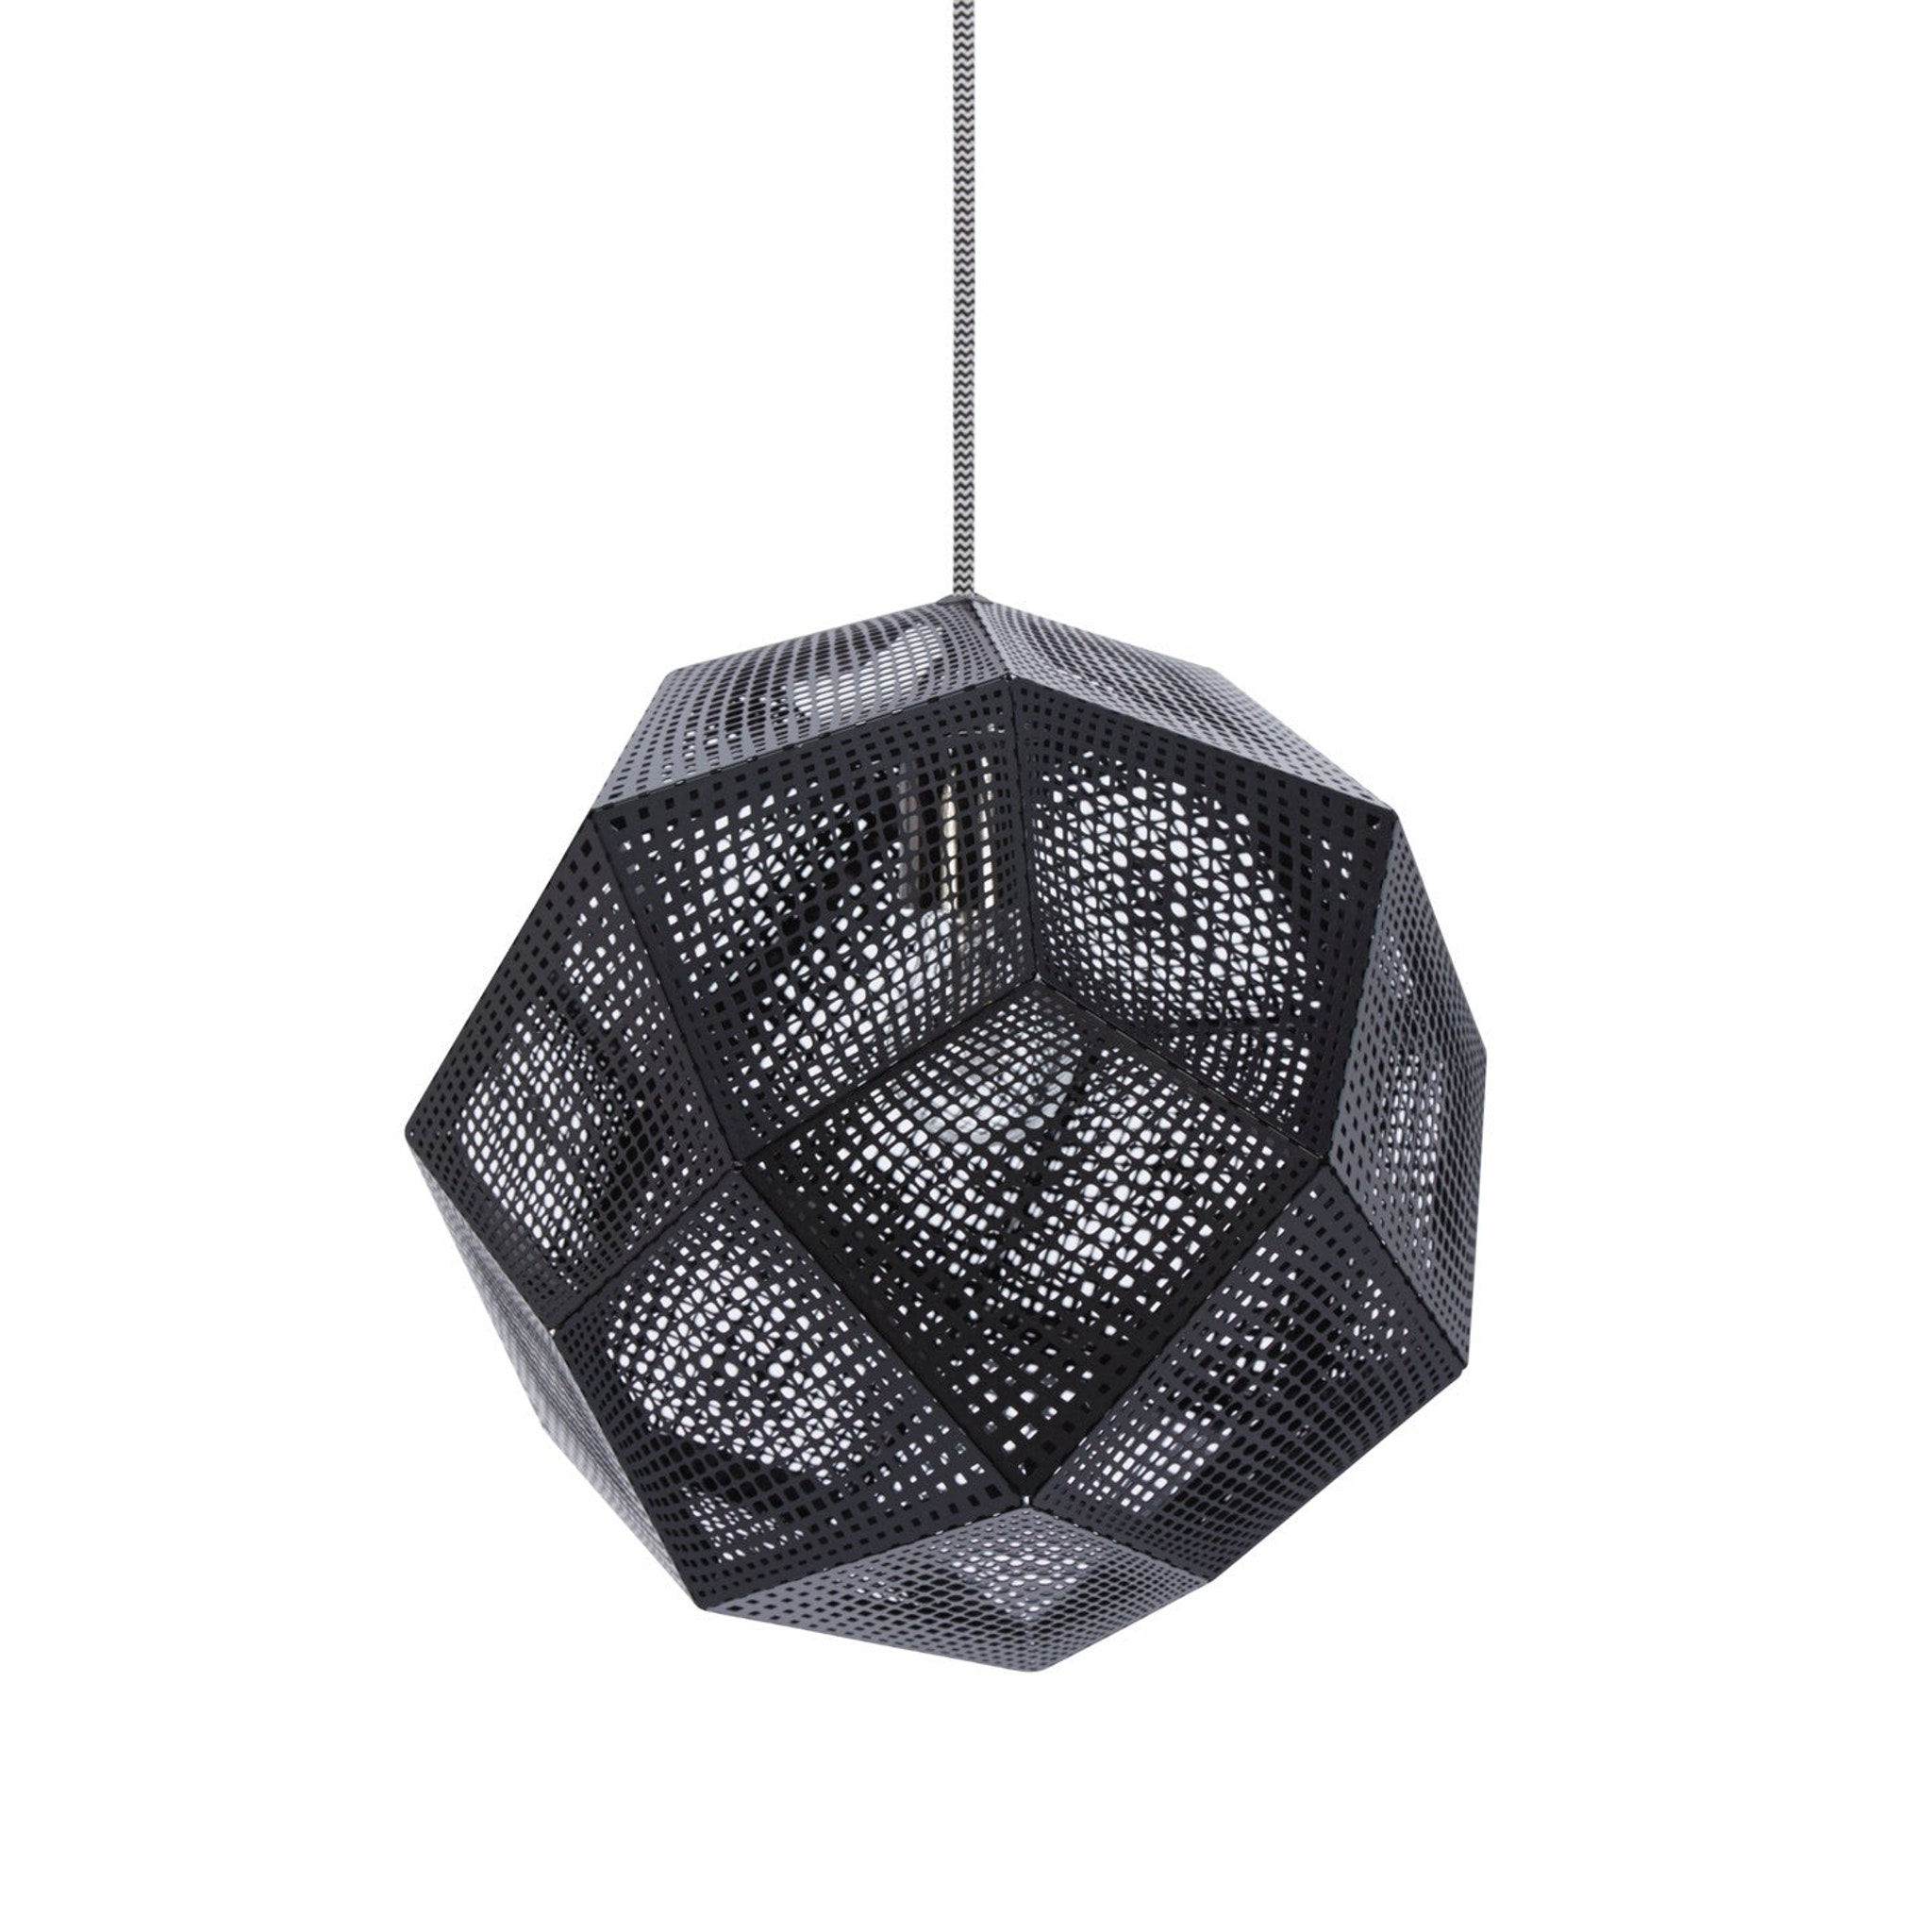 Etch Light Black by Tom Dixon